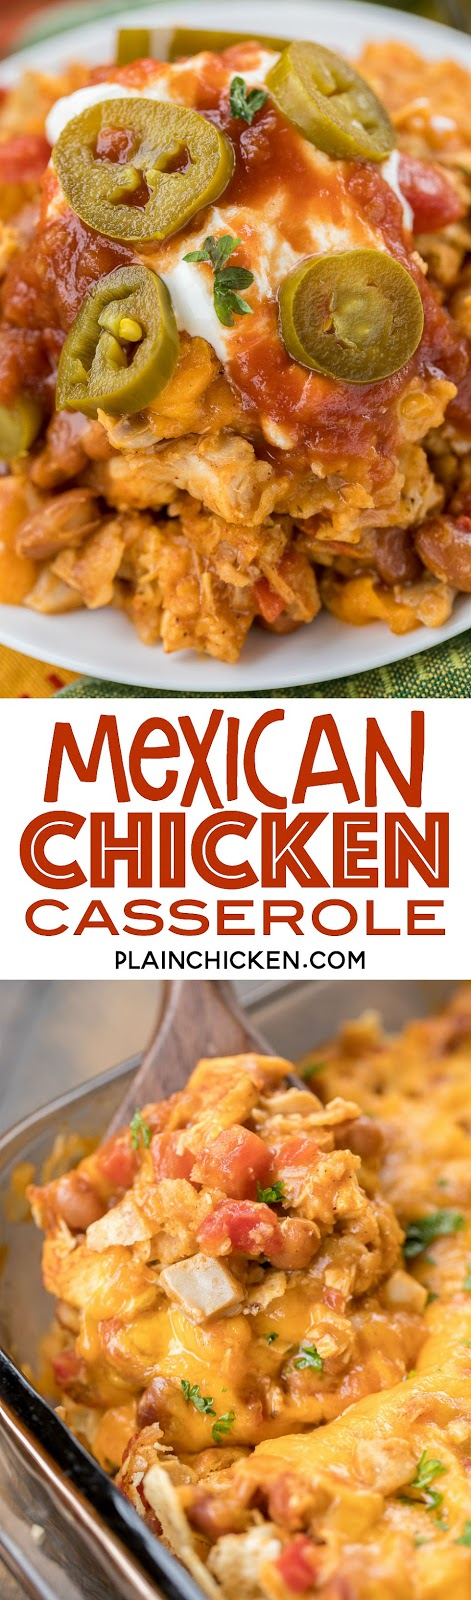 Mexican Chicken Casserole - seriously delicious! Everyone cleaned their plate - even our picky eaters!!! Chicken, tortilla chips, beans, diced tomatoes and green chiles, taco seasoning, cream of chicken soup and cheese. Can make ahead and freeze for later. We LOVE this easy casserole recipe! #casserole #chickencasserole #mexicancasserole #easydinnerrecipe